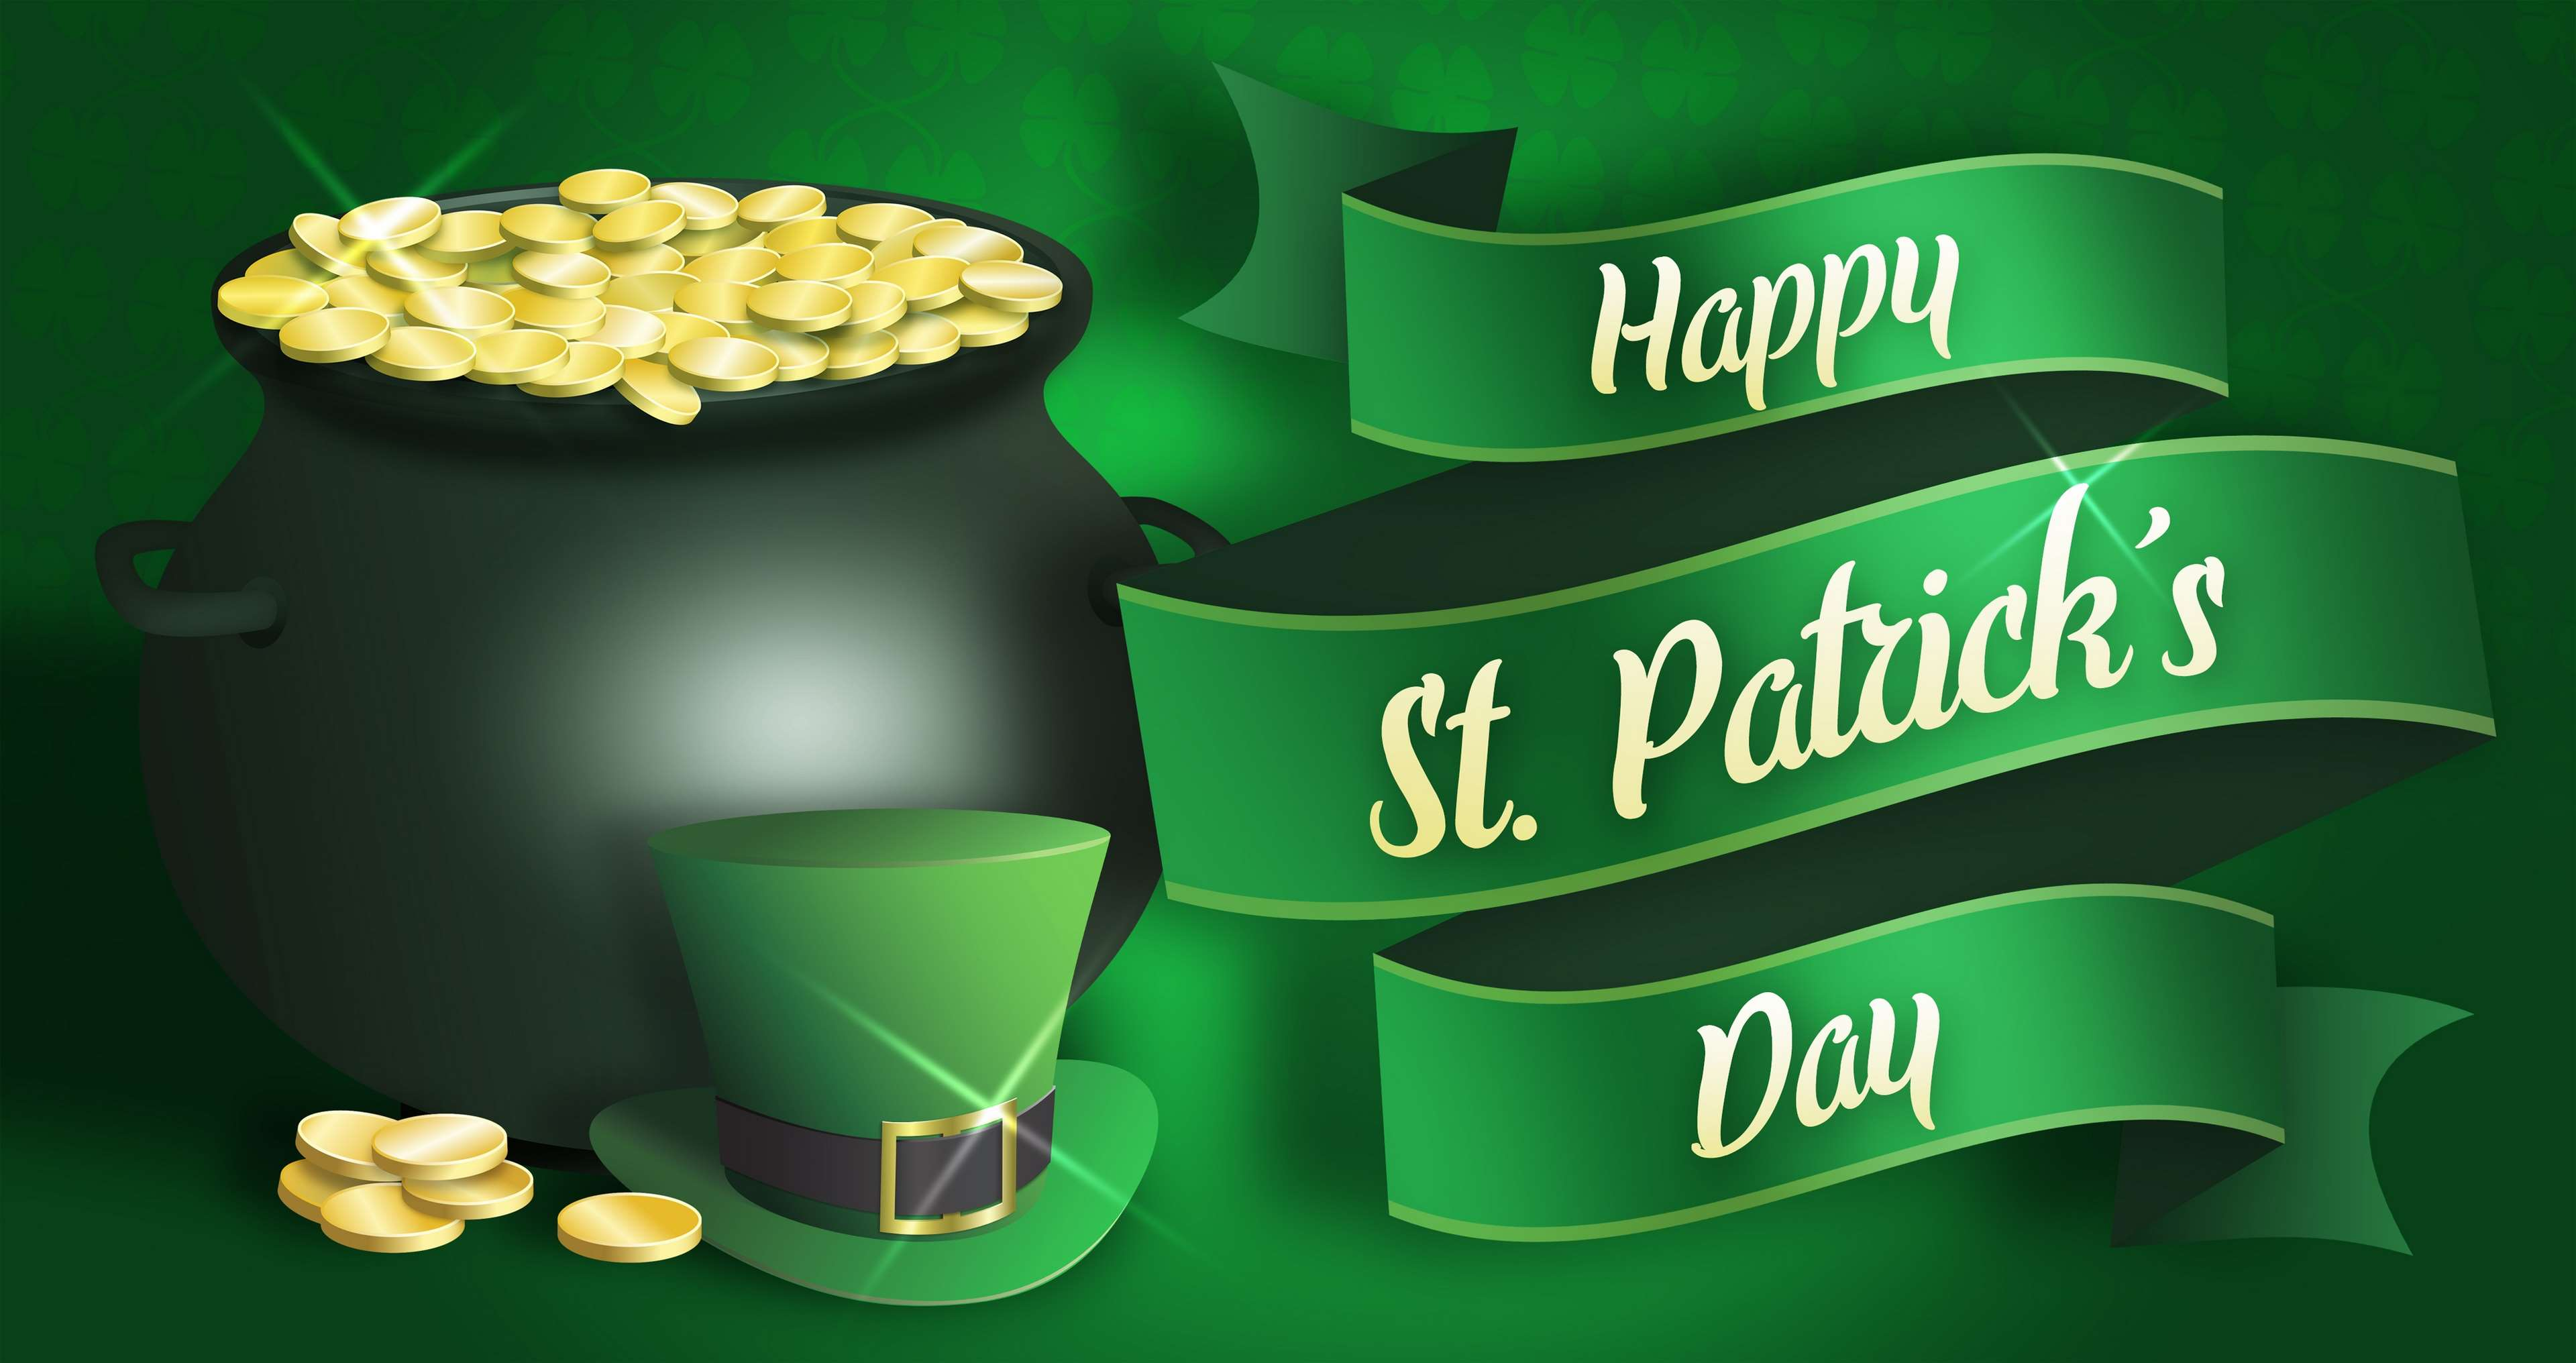 St Patricks Day Wallpapers Hd